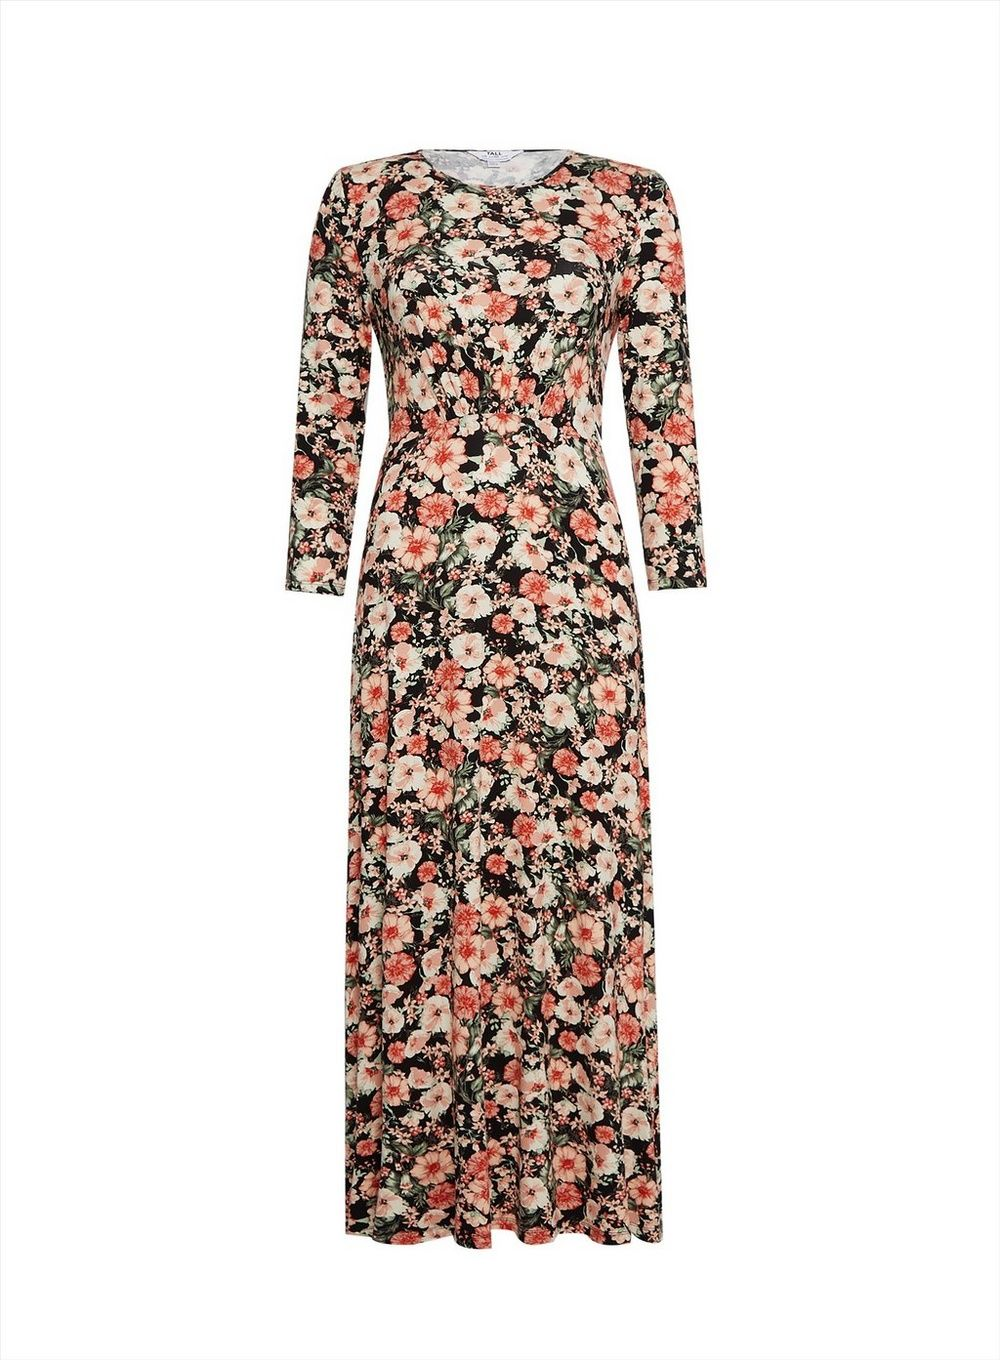 Dorothy Perkins Womens Tall Black Floral Dress 3/4 Sleeve Round Neck Relaxed